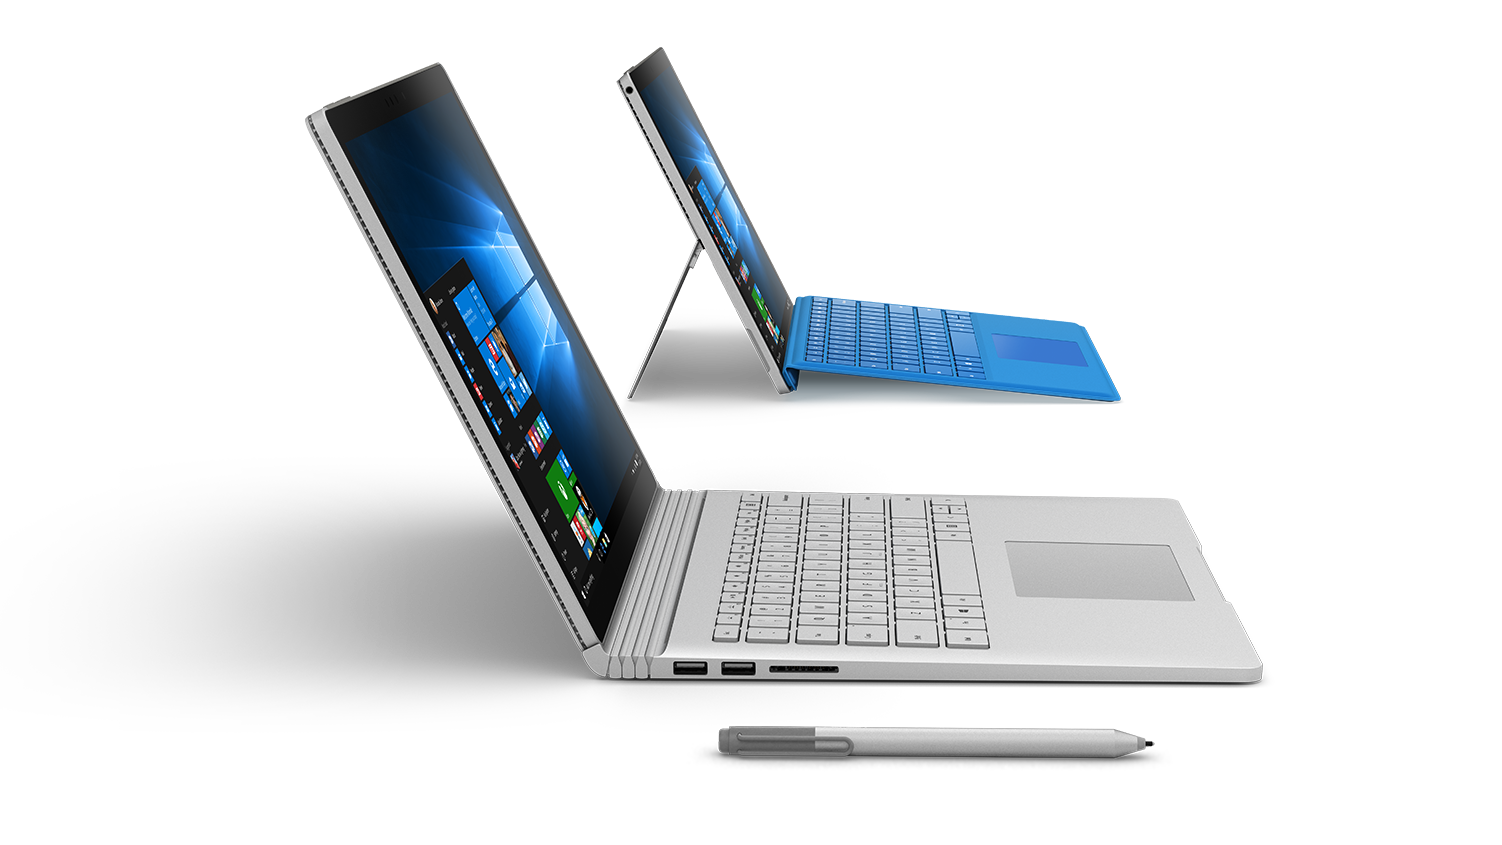 Three surface devices together in formation